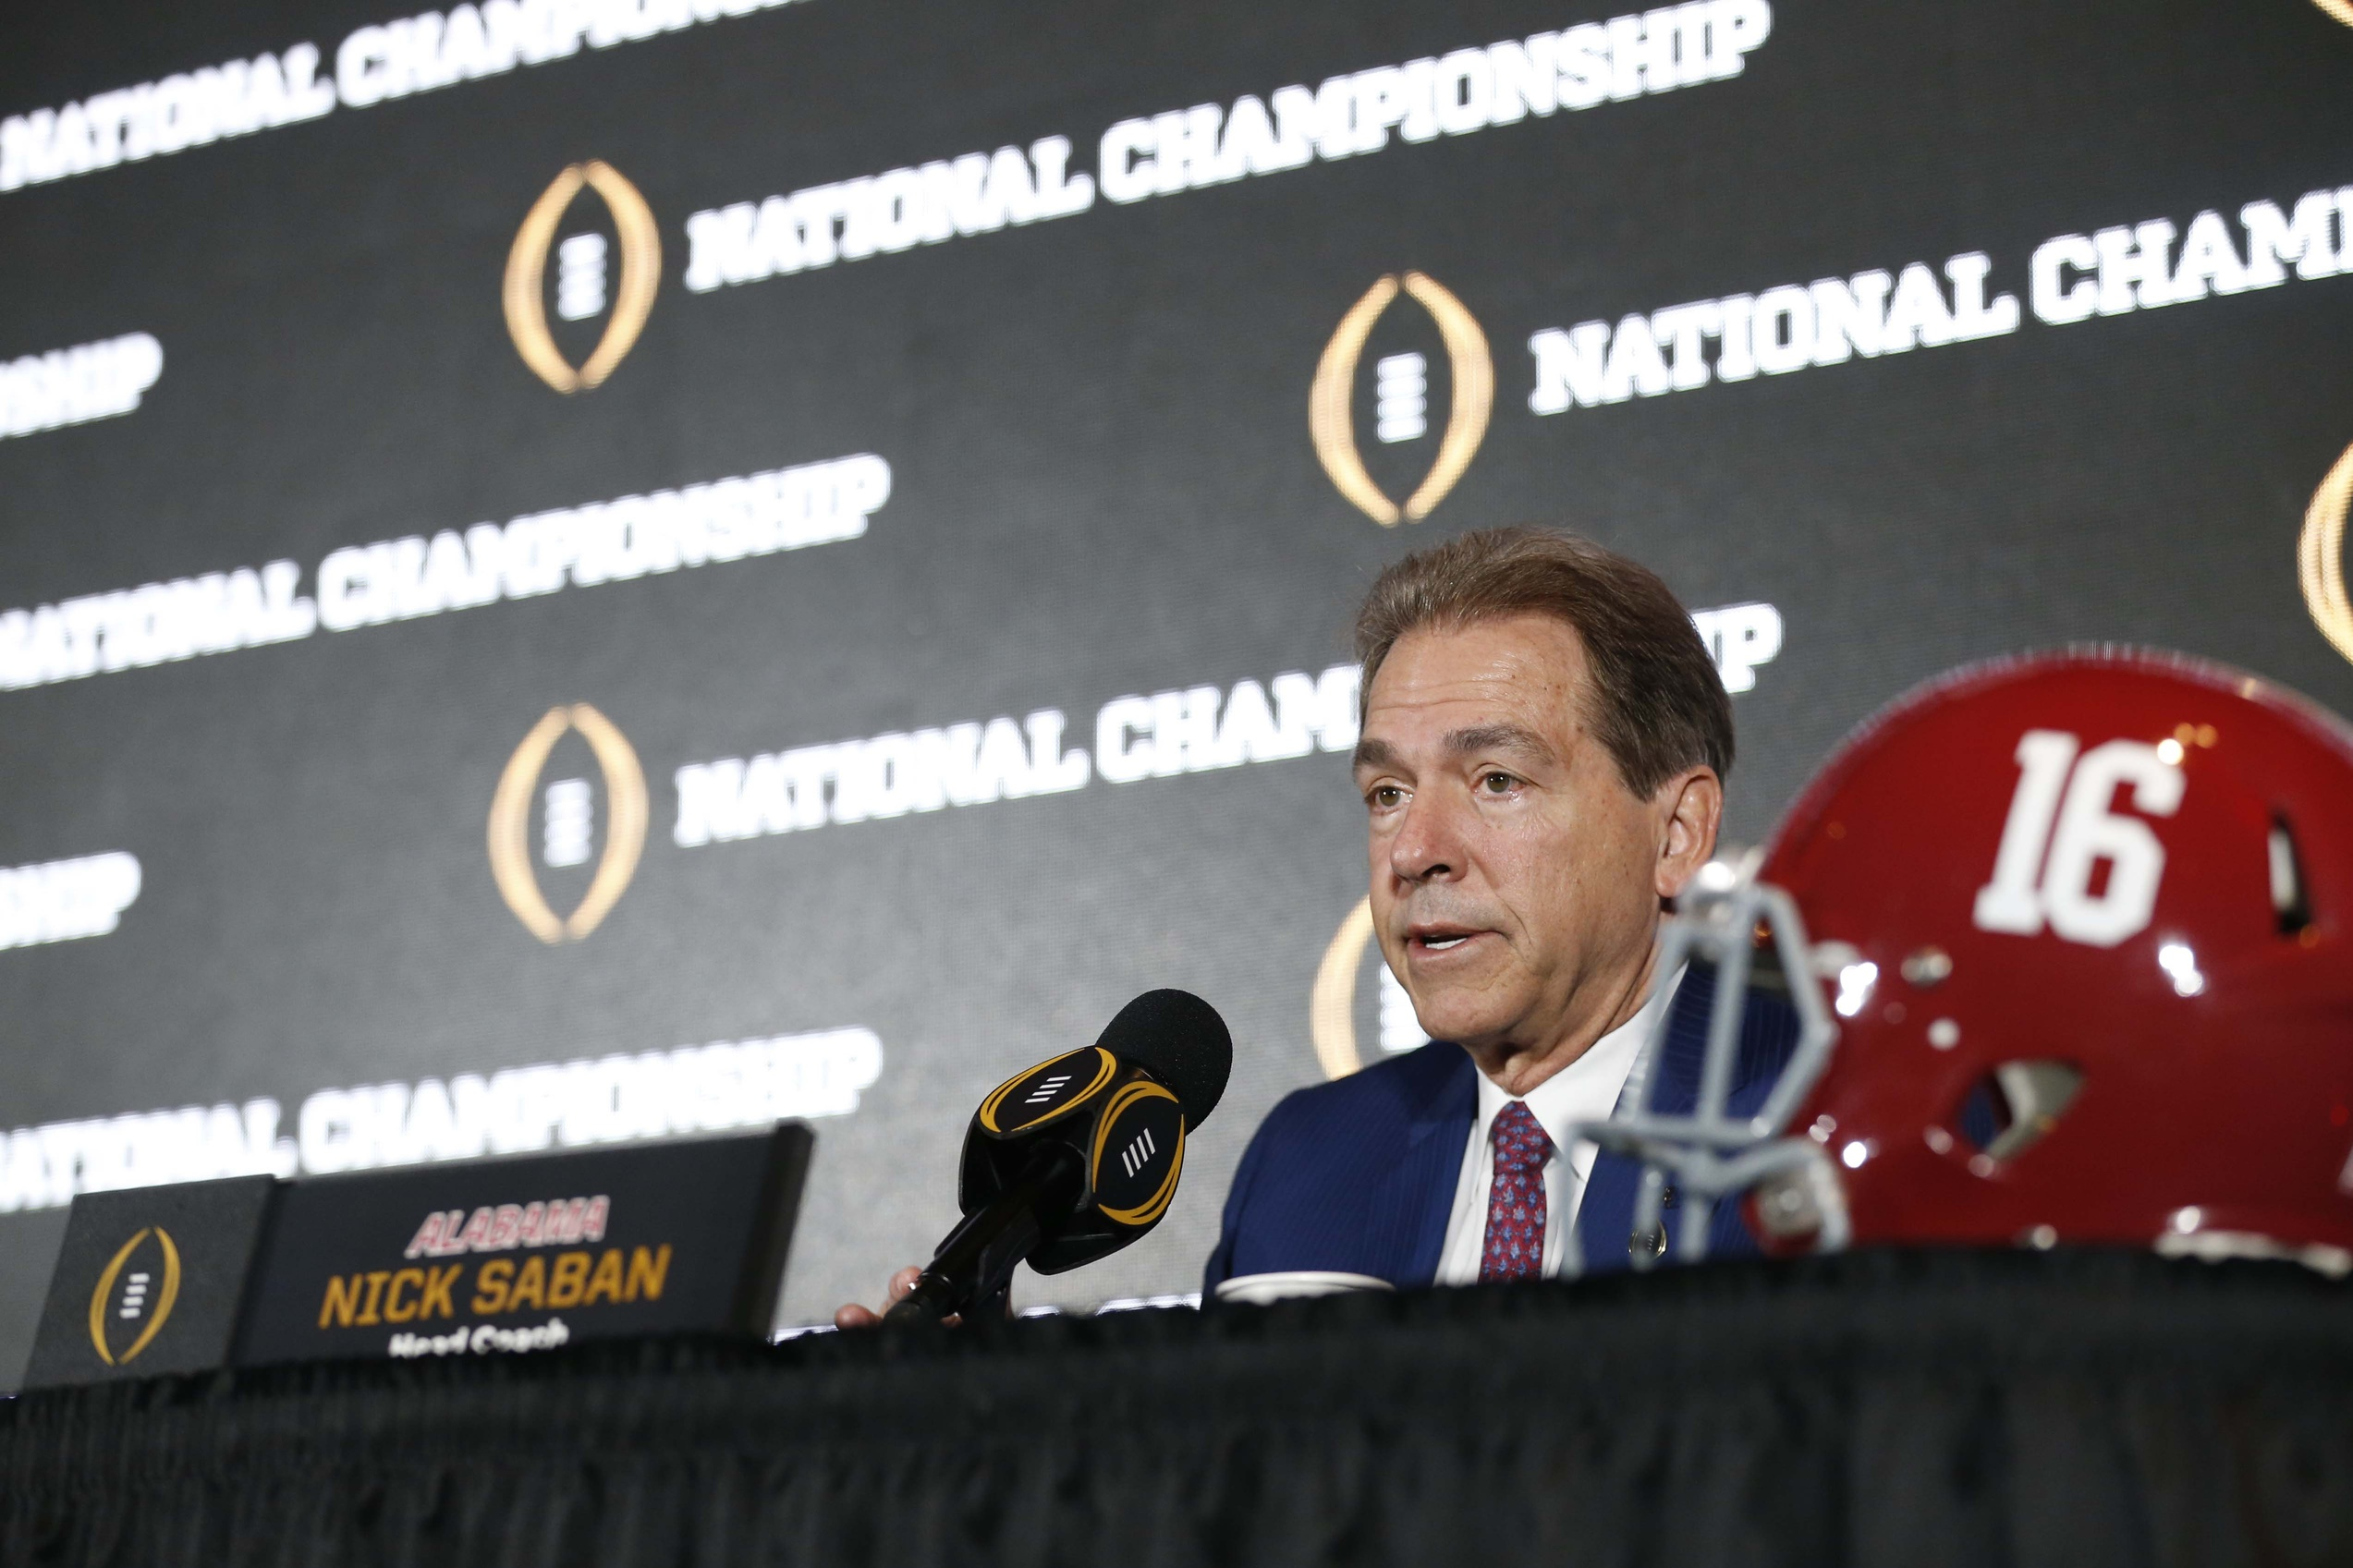 Jan 8, 2017; Tampa, FL, USA; Alabama Crimson Tide head coach Nick Saban speaks to media during the head coaches news conference at the Tampa Convention Center. Mandatory Credit: Kim Klement-USA TODAY Sports